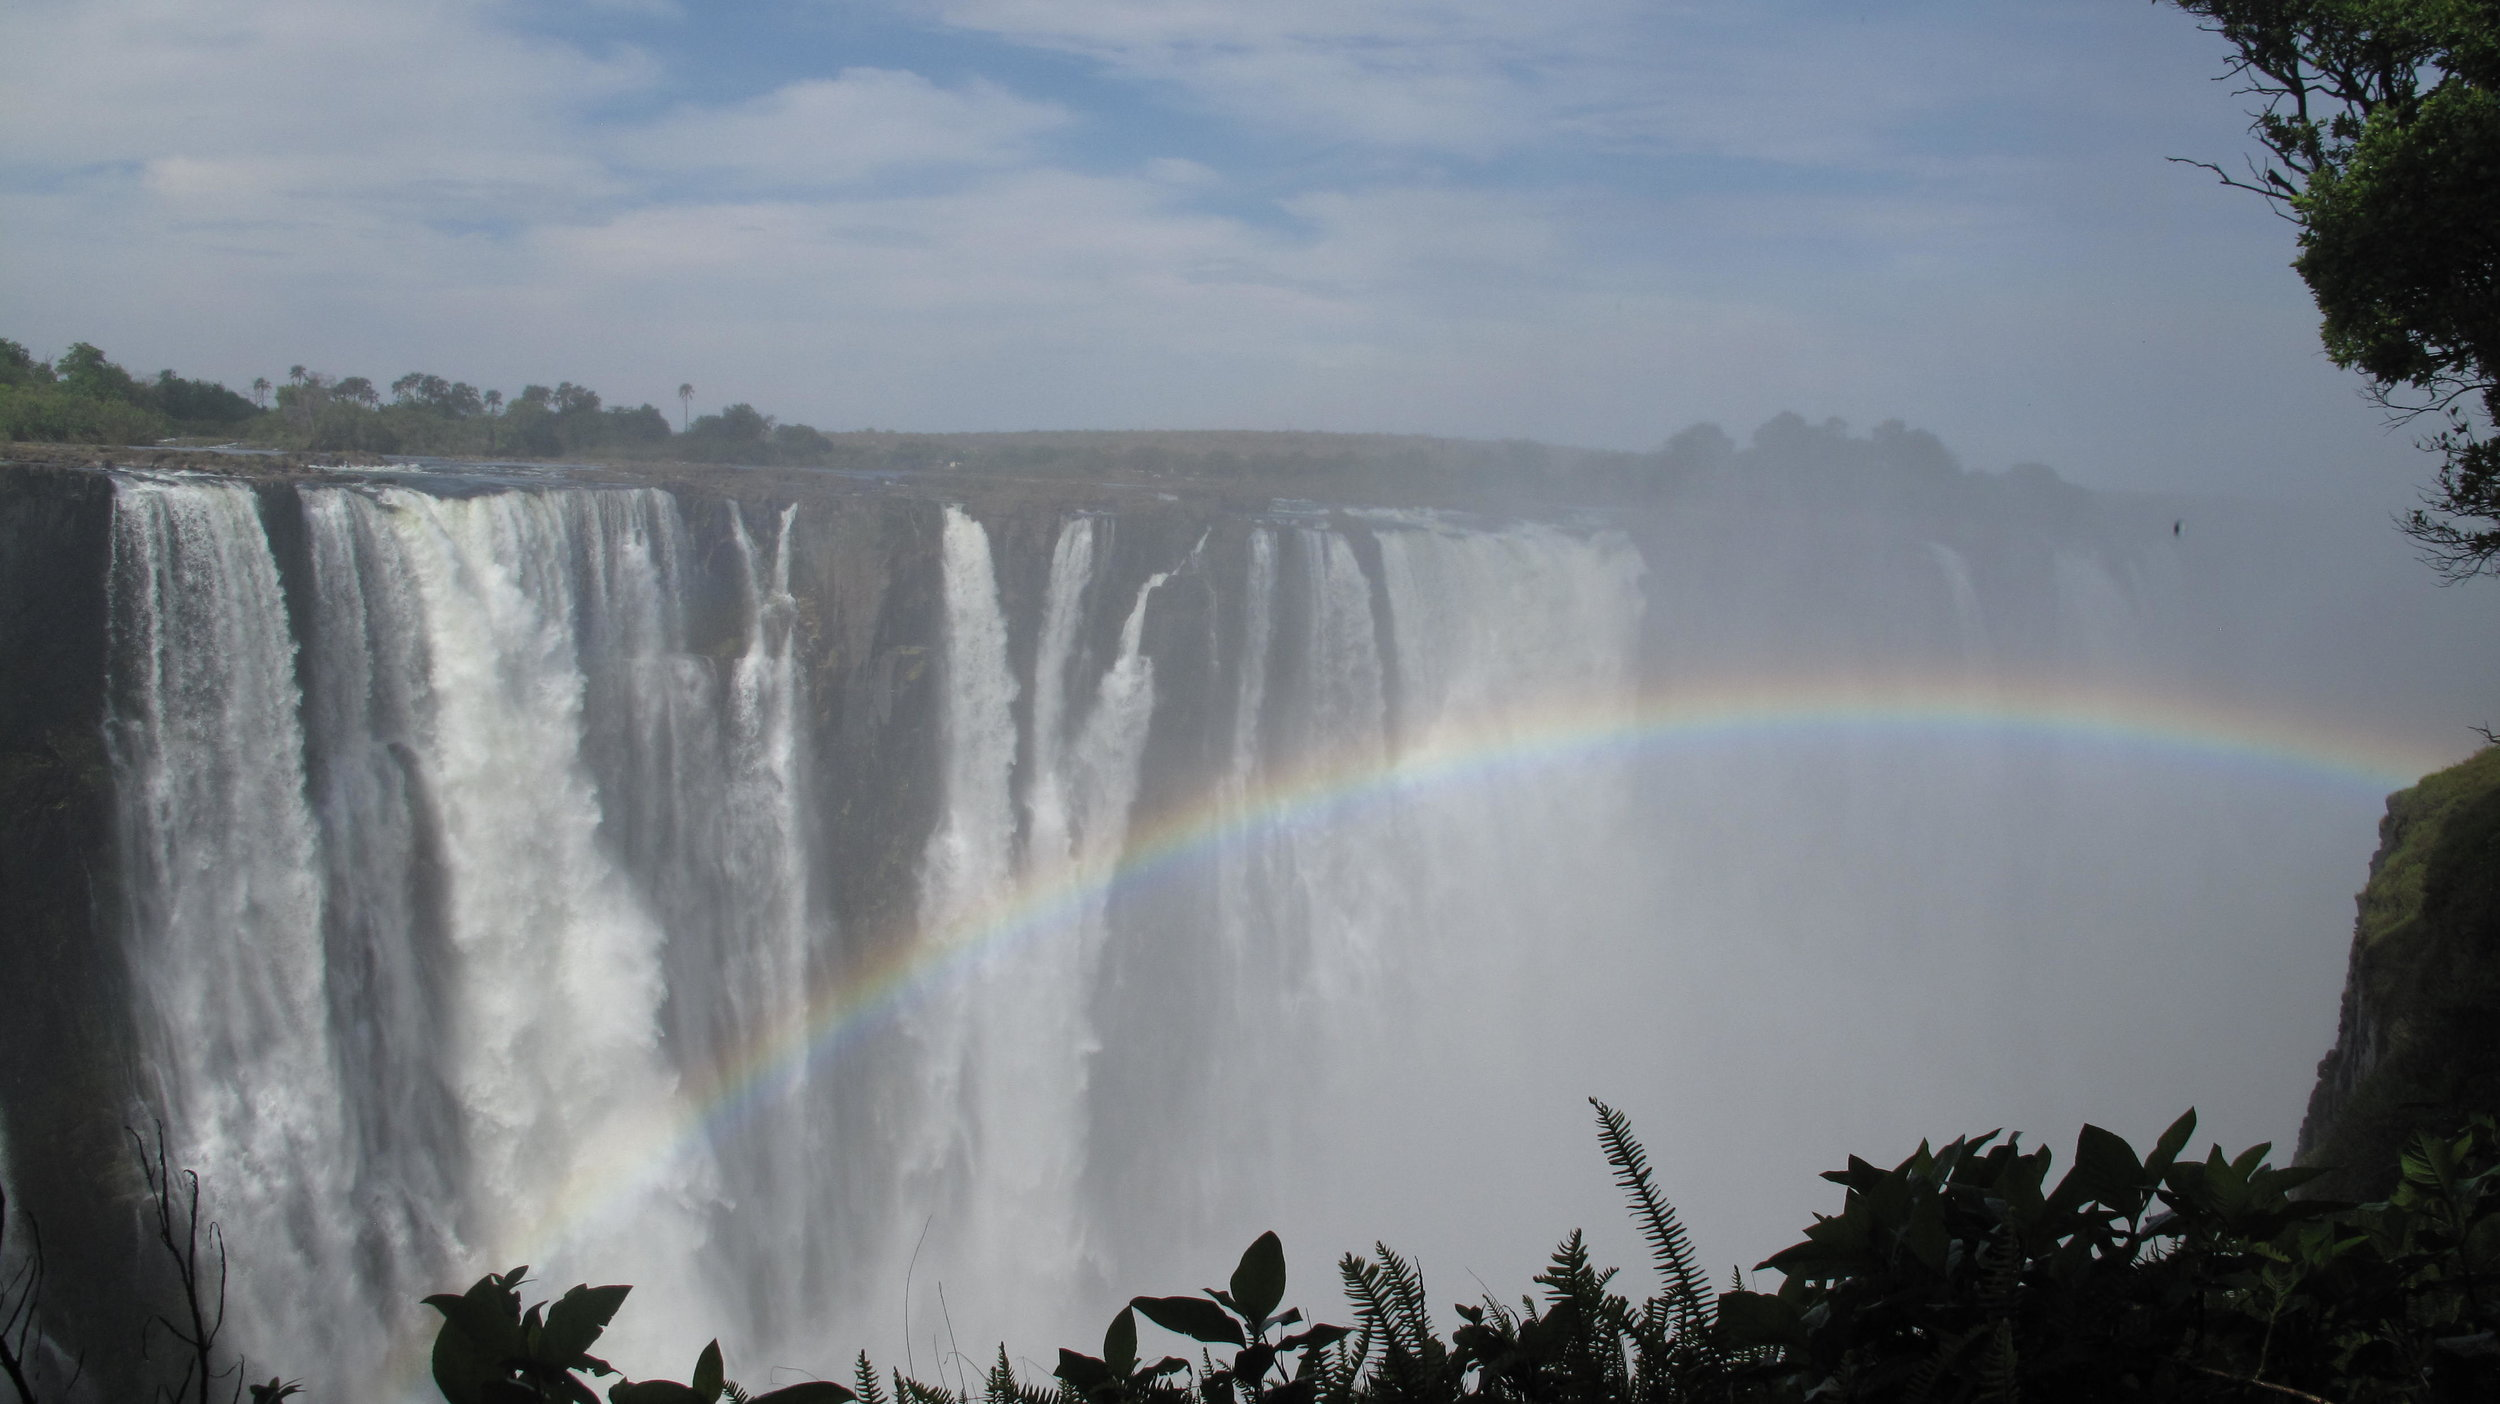 The Other Side:  Connect with the Photo: Taken right at the end of a visit to Victoria Falls. Shot from the Zambia side looking towards Zimbabwe.